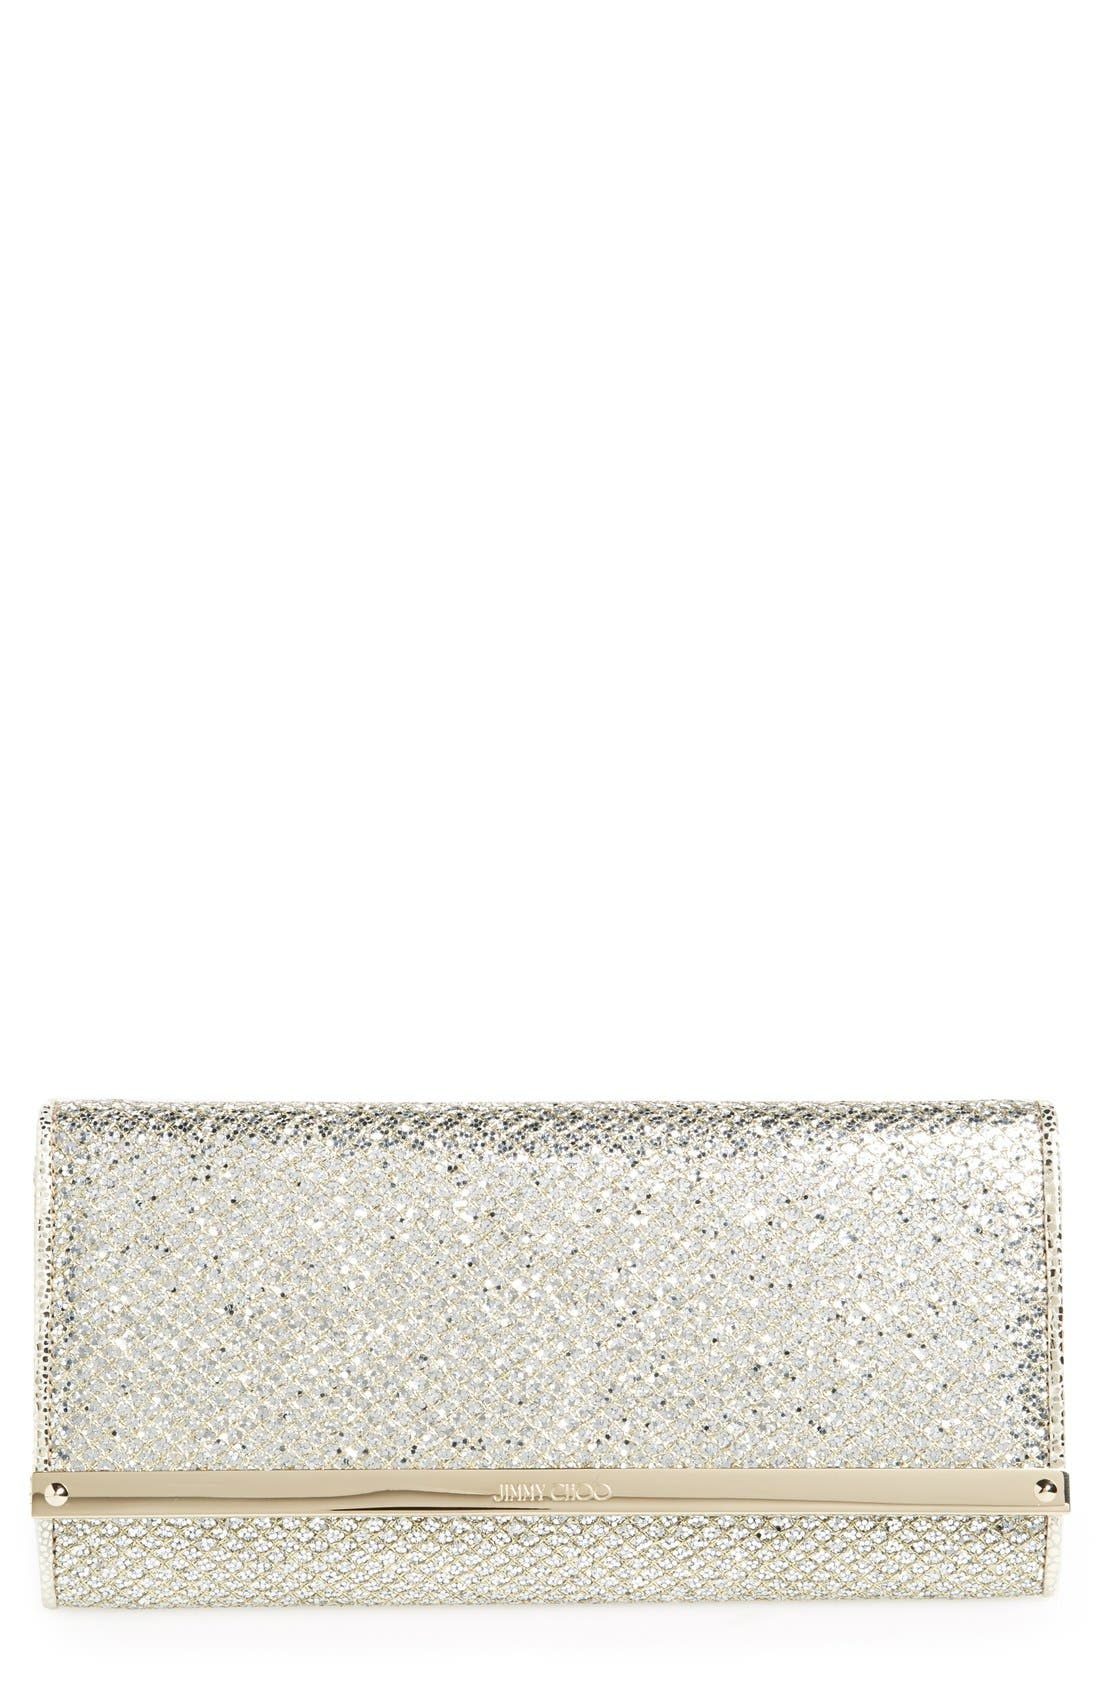 Main Image - Jimmy Choo 'Milla' Glitter Wallet on a Chain